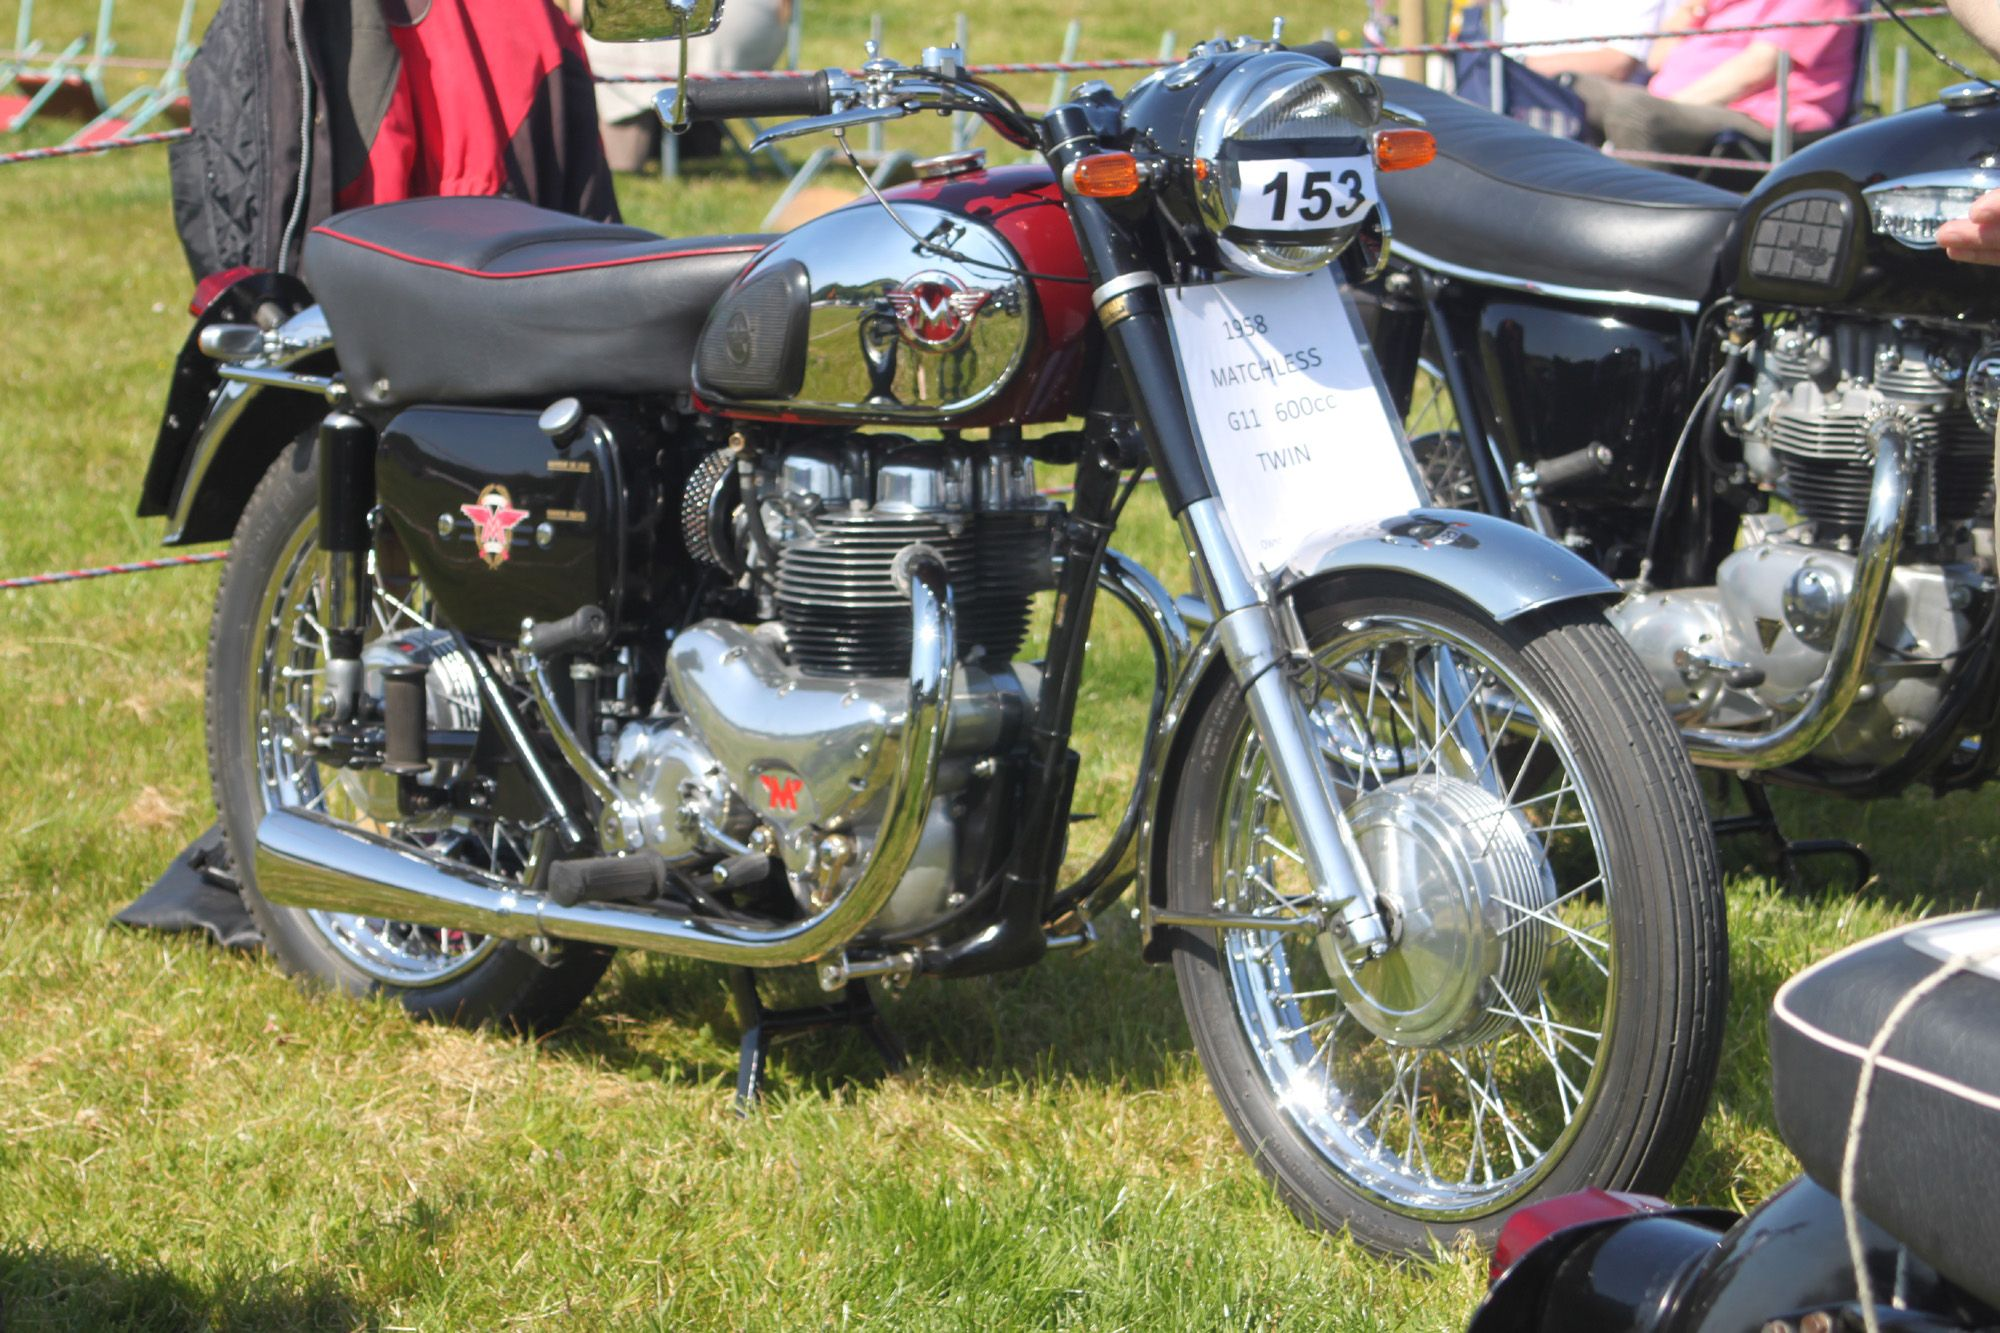 Matchless g 11 csr for sale 1958 on car and classic uk c544589 - Matchless G11 Twin 600cc